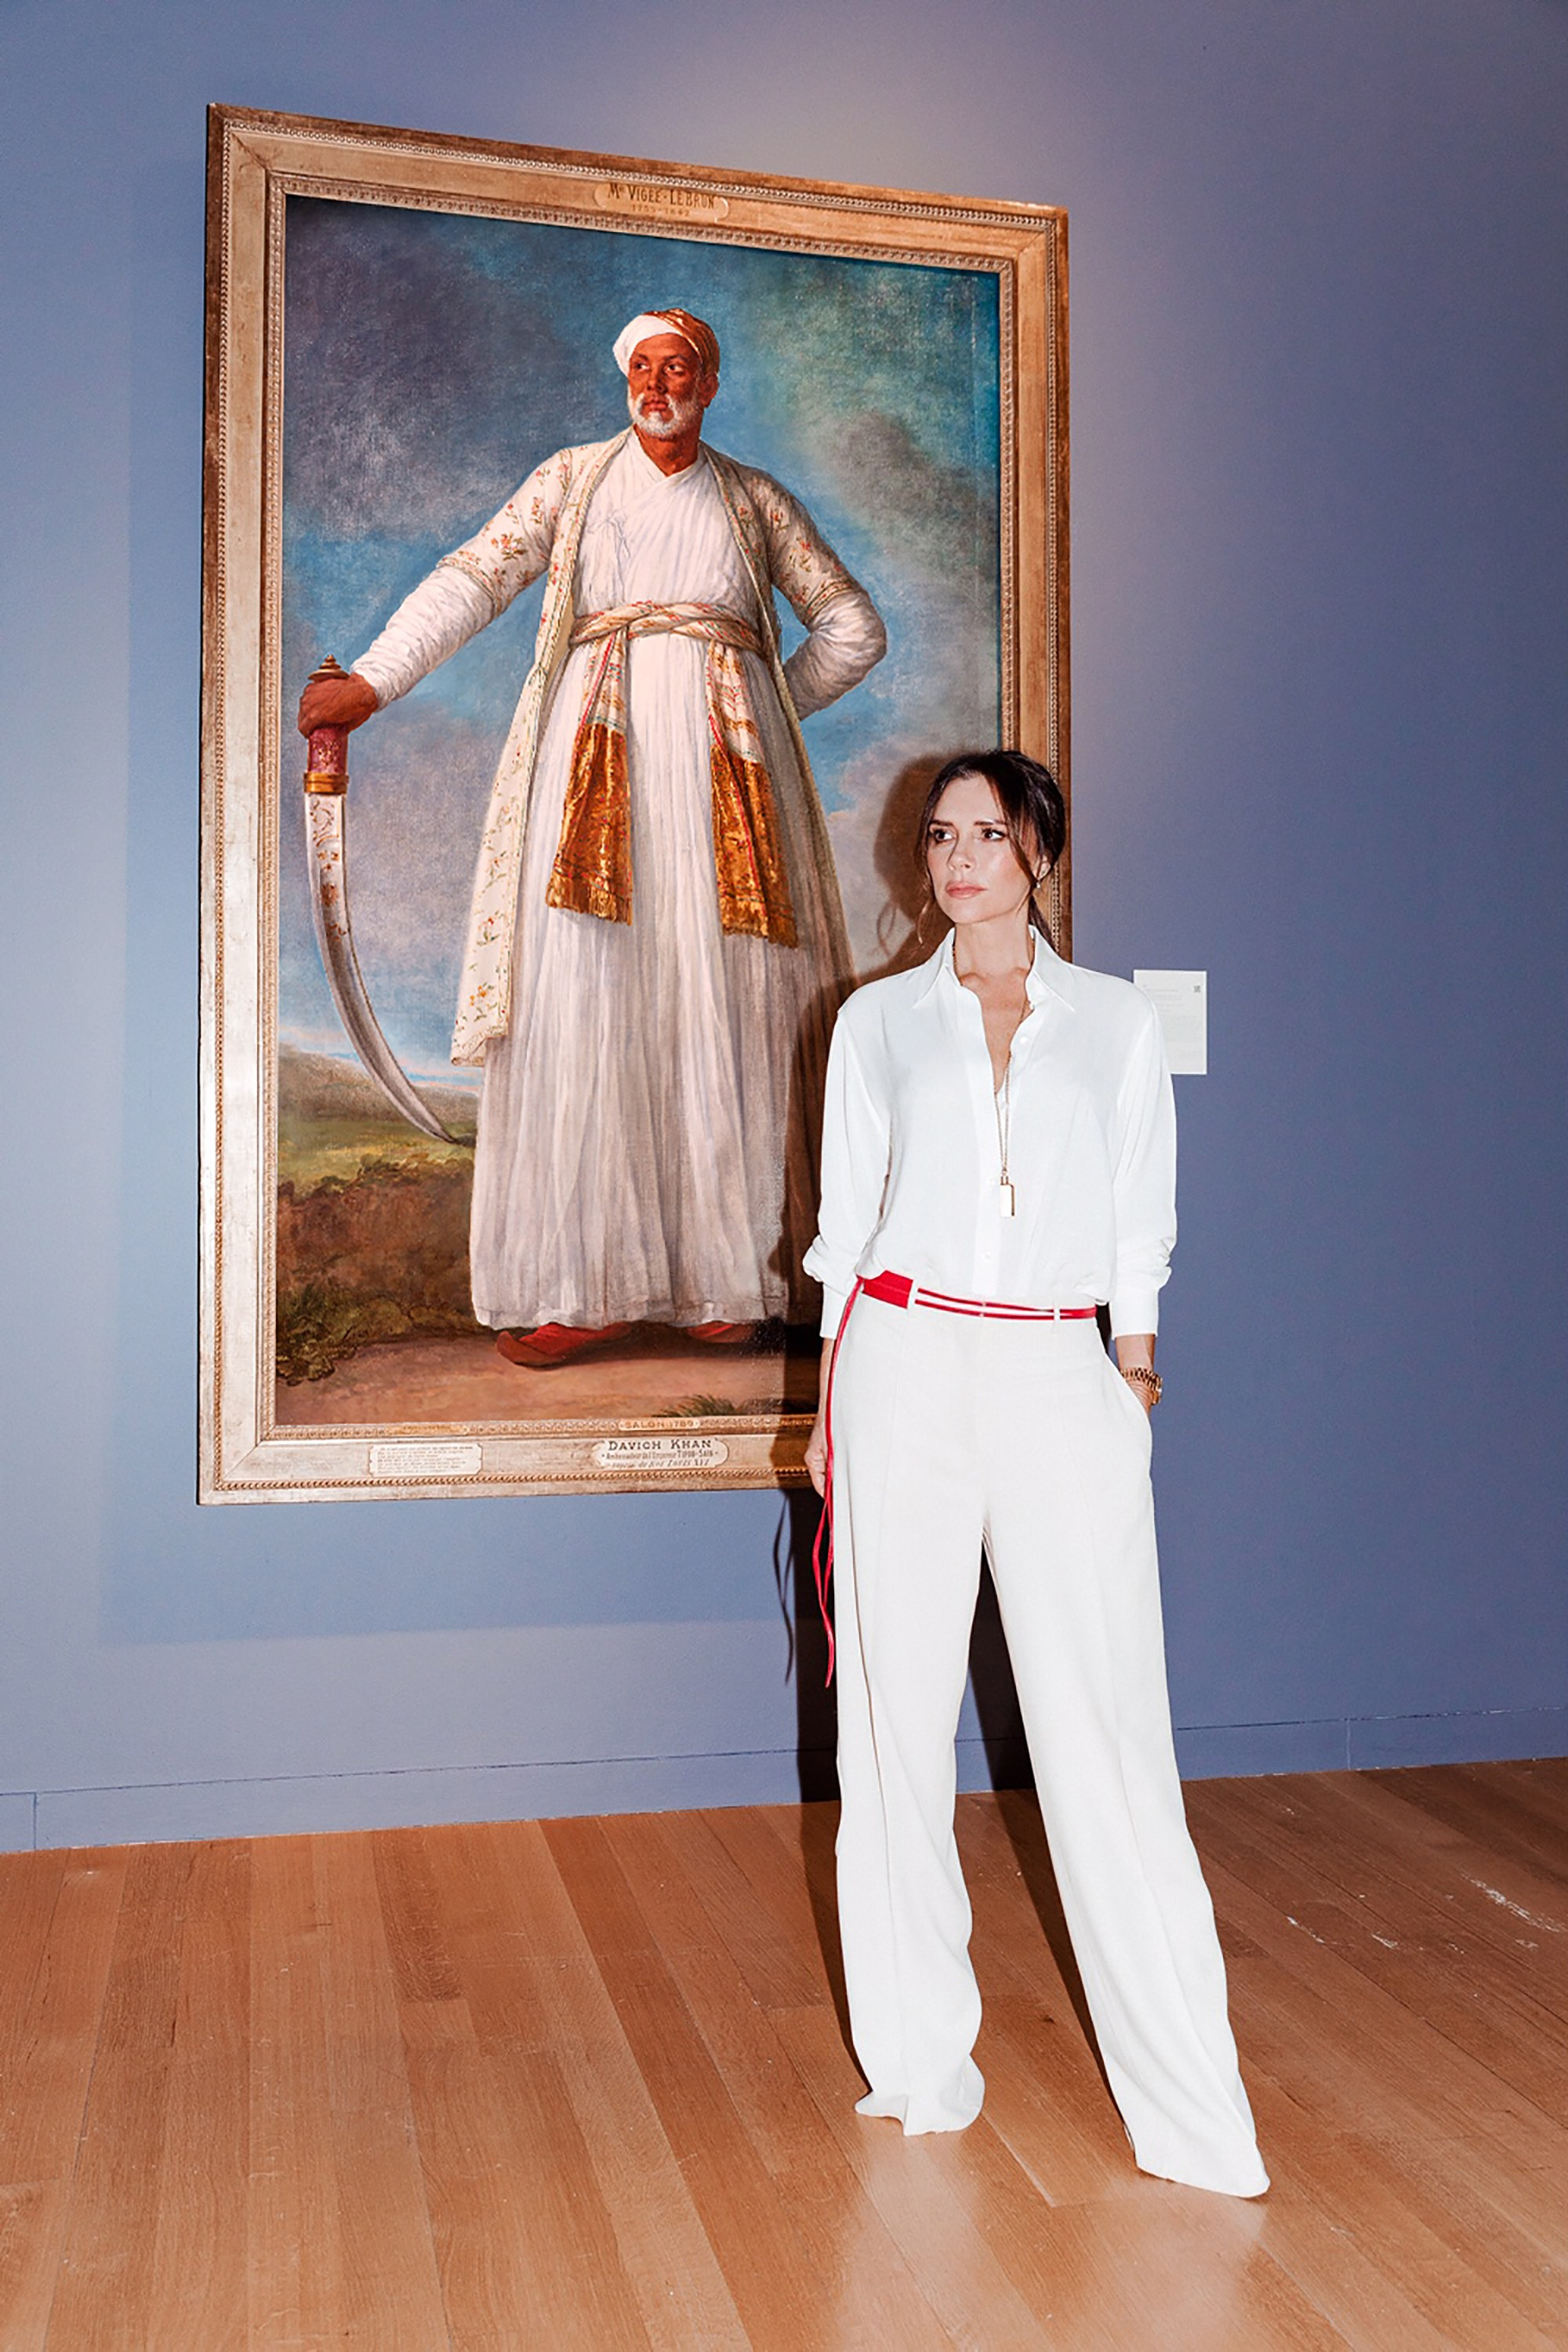 """Victoria Beckham stands next to Vigee Le Brun's portrait of the Indian ambassador to celebrate the """"Female Triumphant,"""" 21 works of female Old Masters auctioned at Sotheby's in January. Photo: Tom Newton, Vogue"""